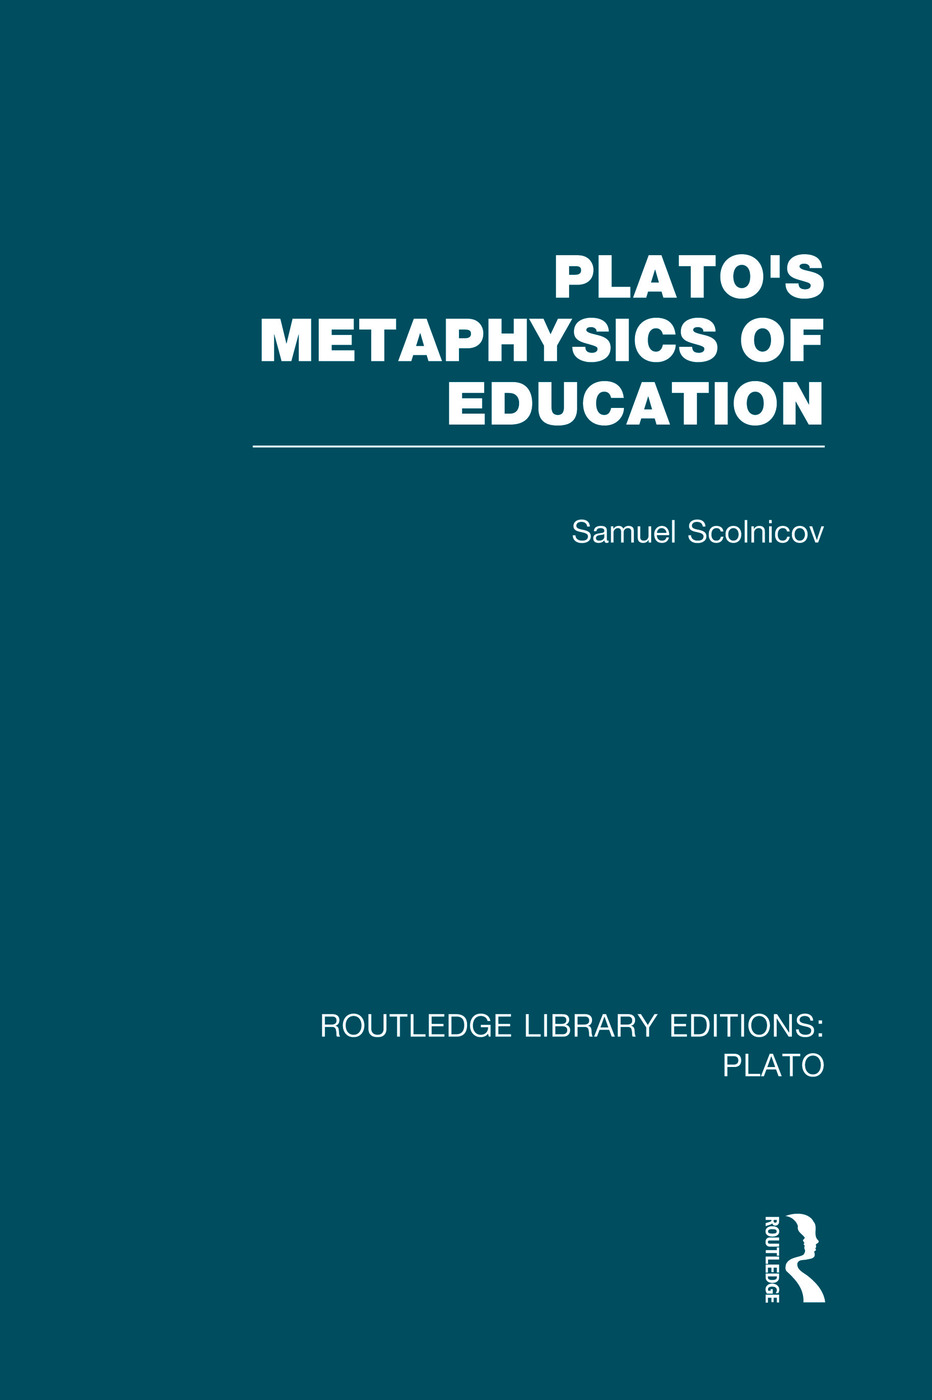 Plato 's Metaphysics of Education (RLE: Plato) book cover